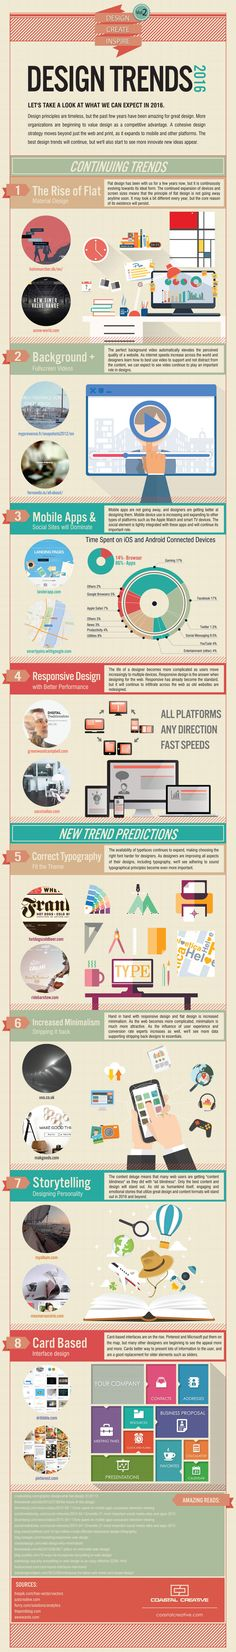 design trends 2016 (Infographic)